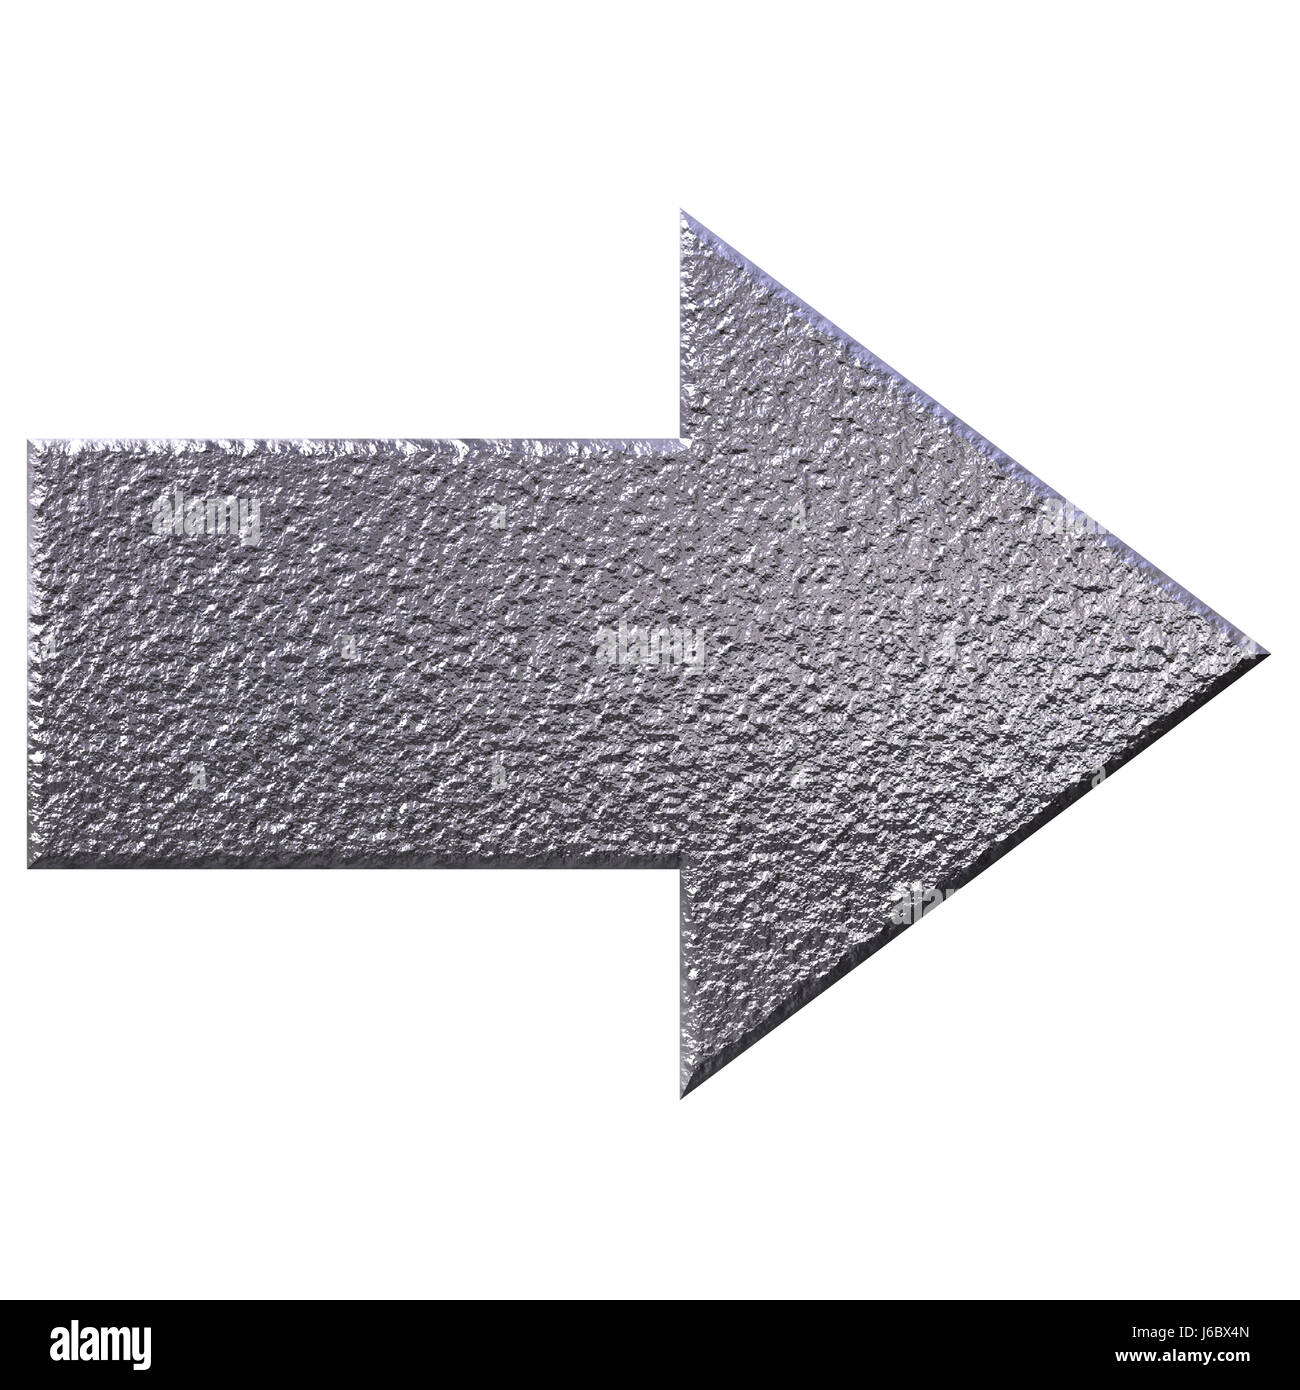 Hammered Metal Stock Photos Amp Hammered Metal Stock Images